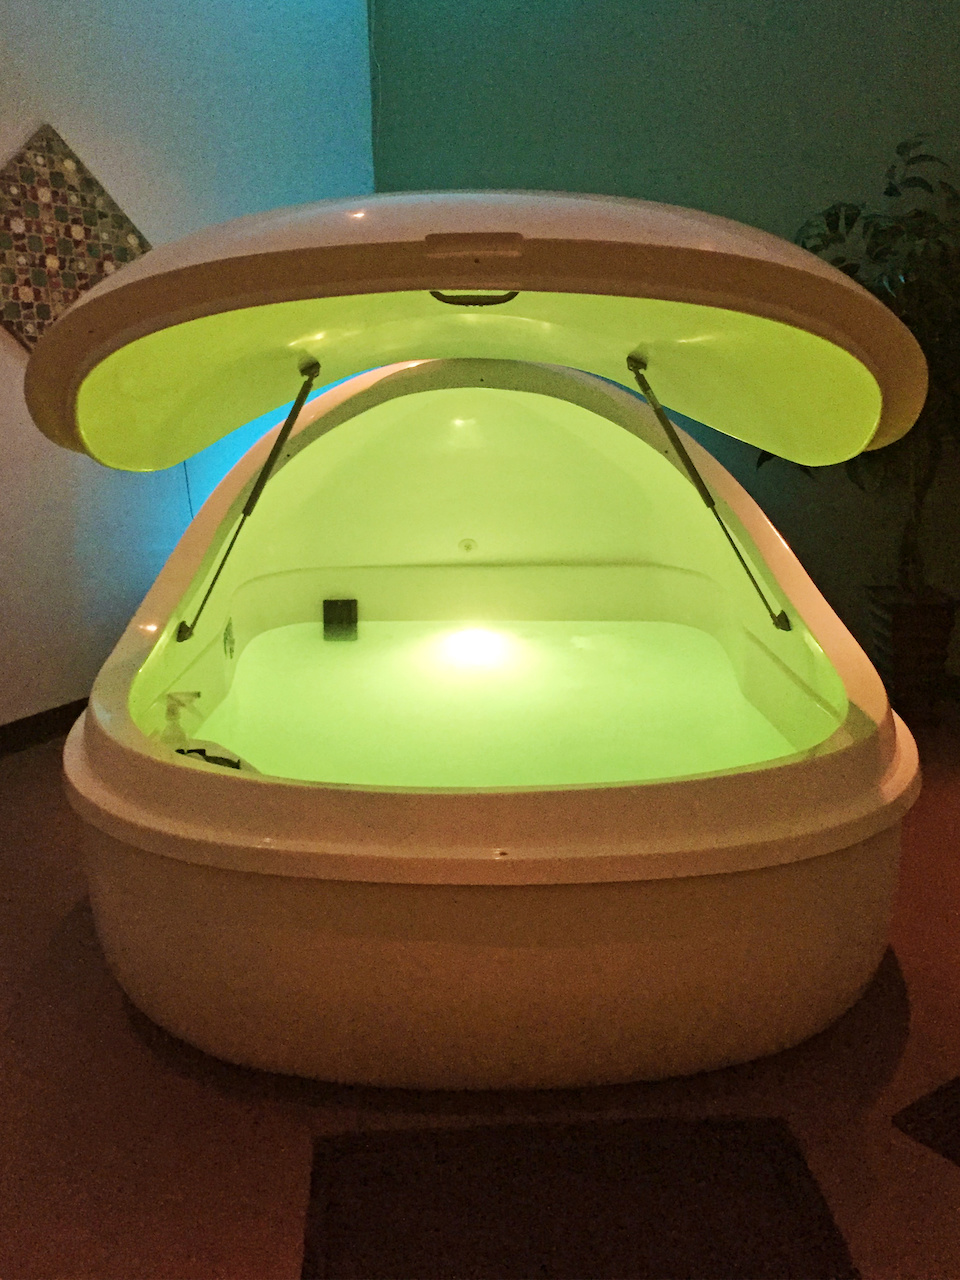 """It is nice finding that place where you can just go and relax,"" says Moises Arias, a float spa client."